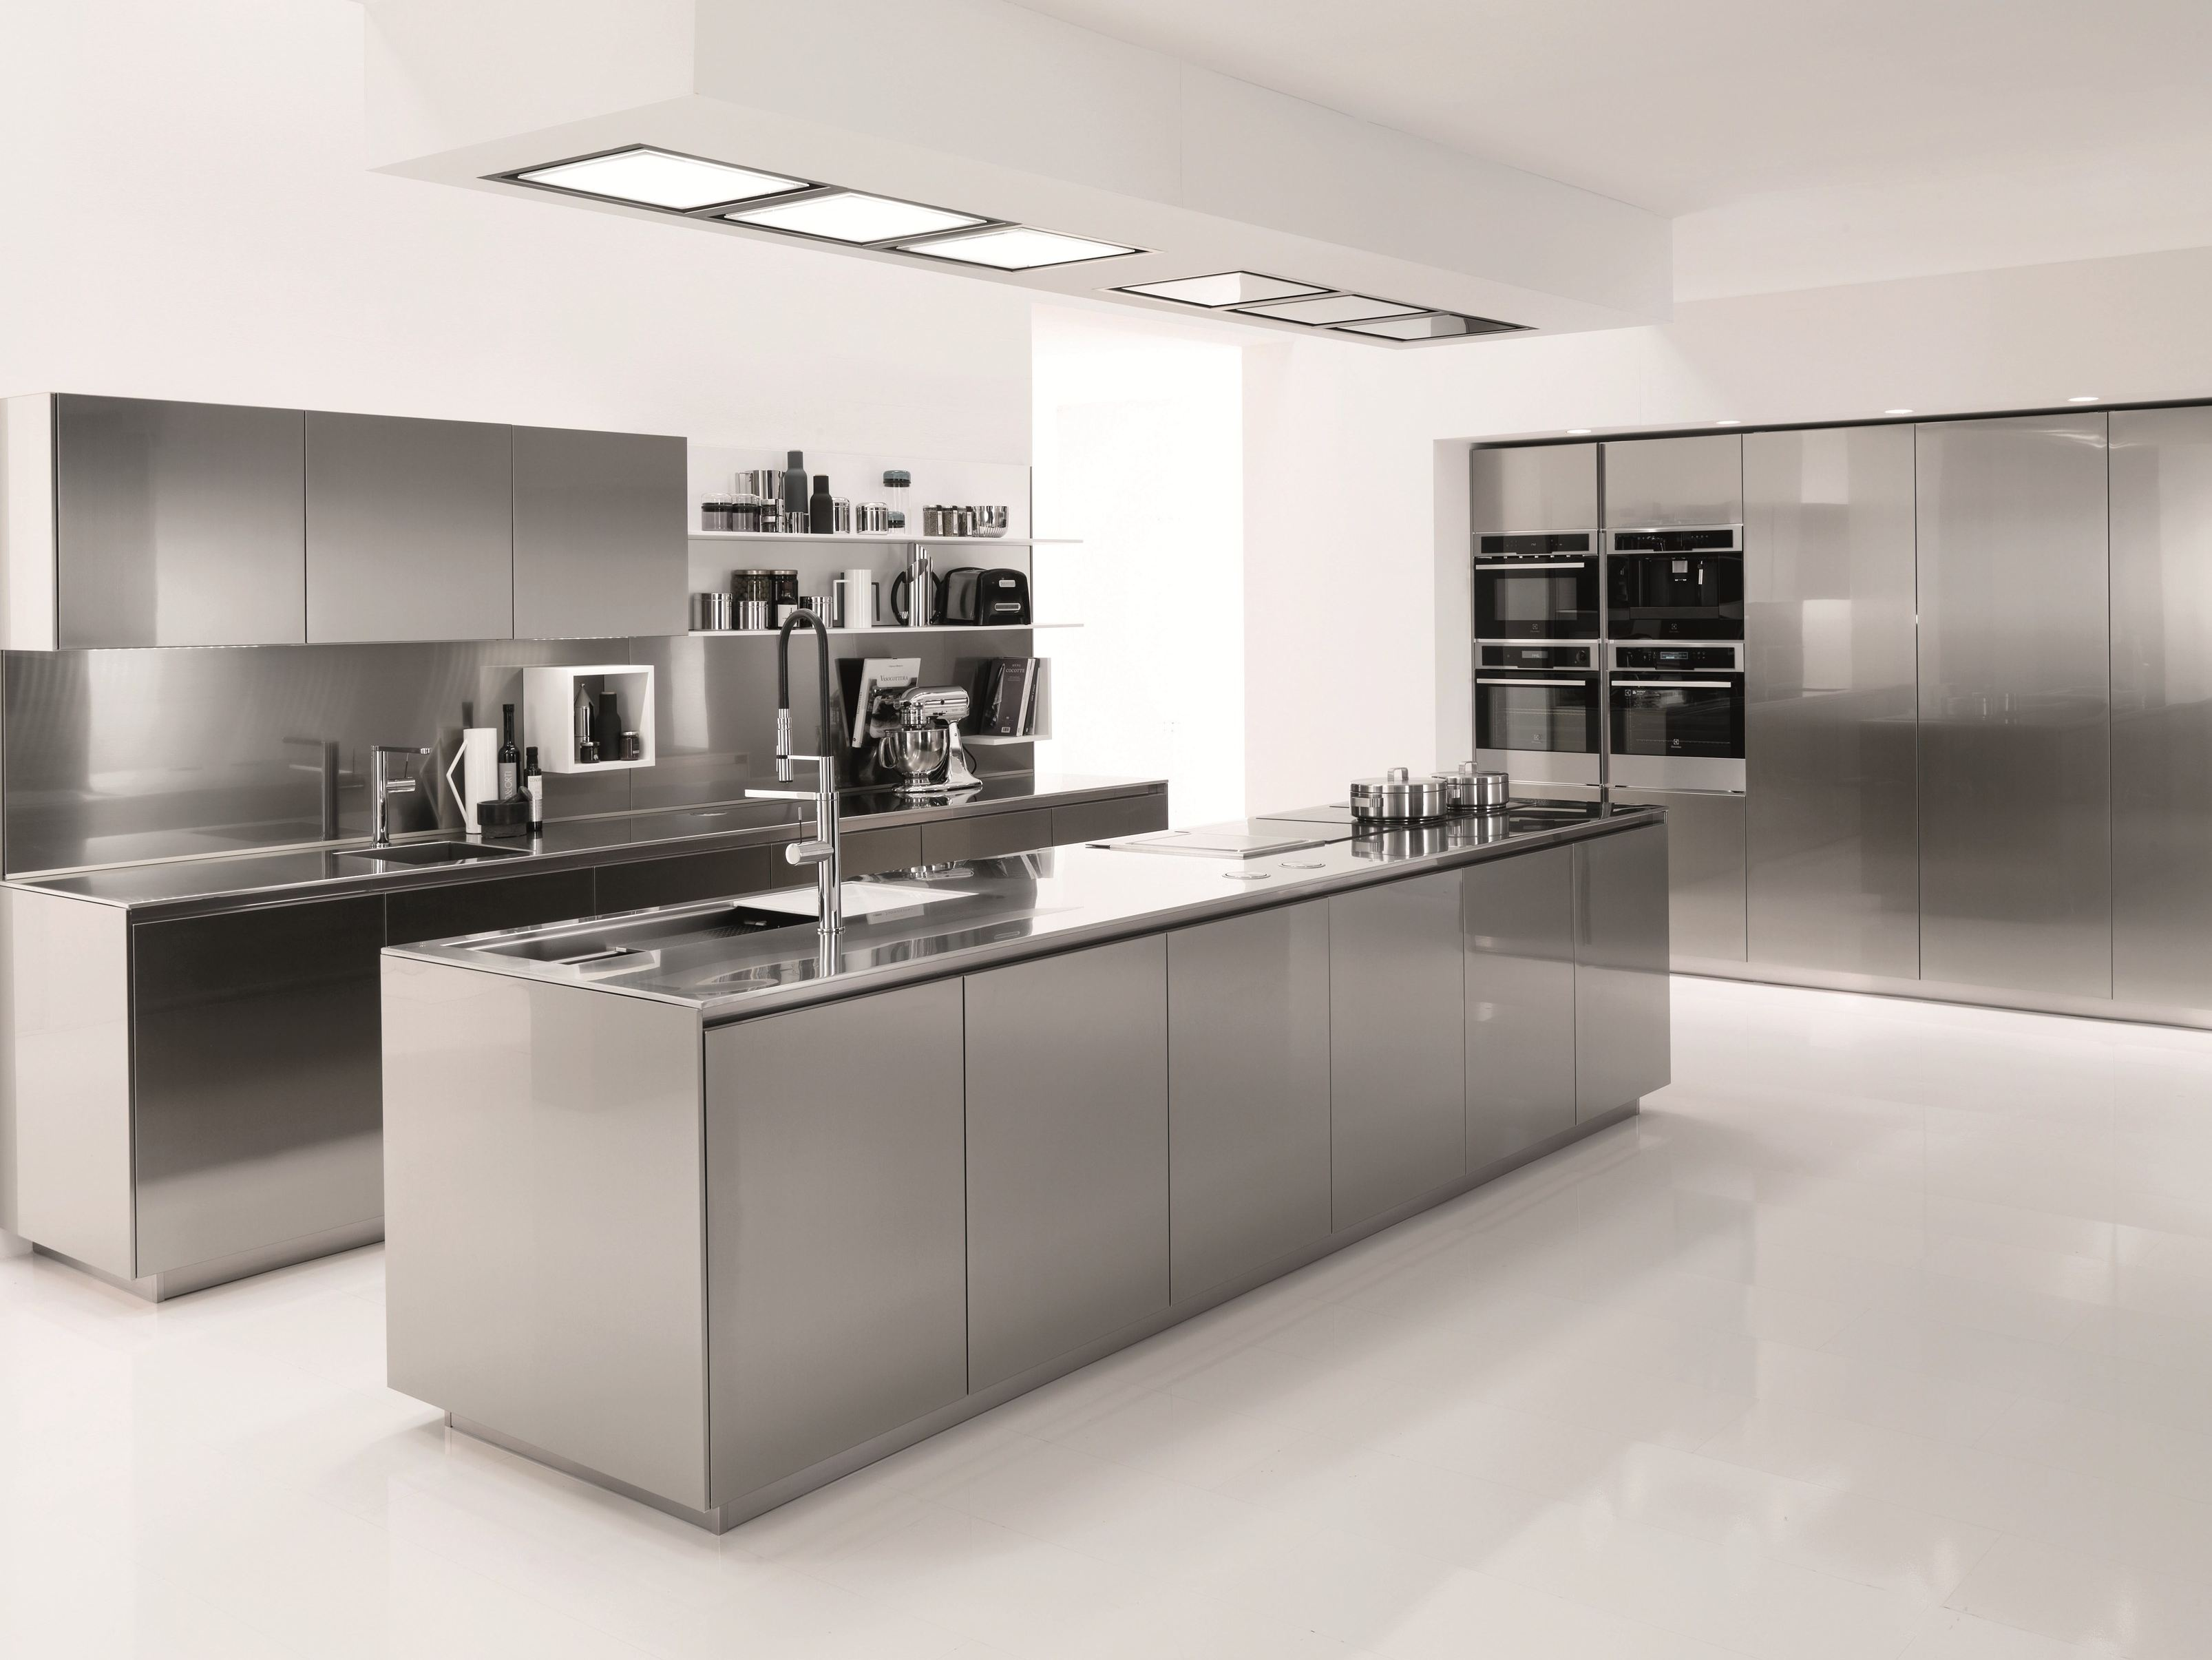 Stainless steel kitchen FILOFREE STEEL by Euromobil design